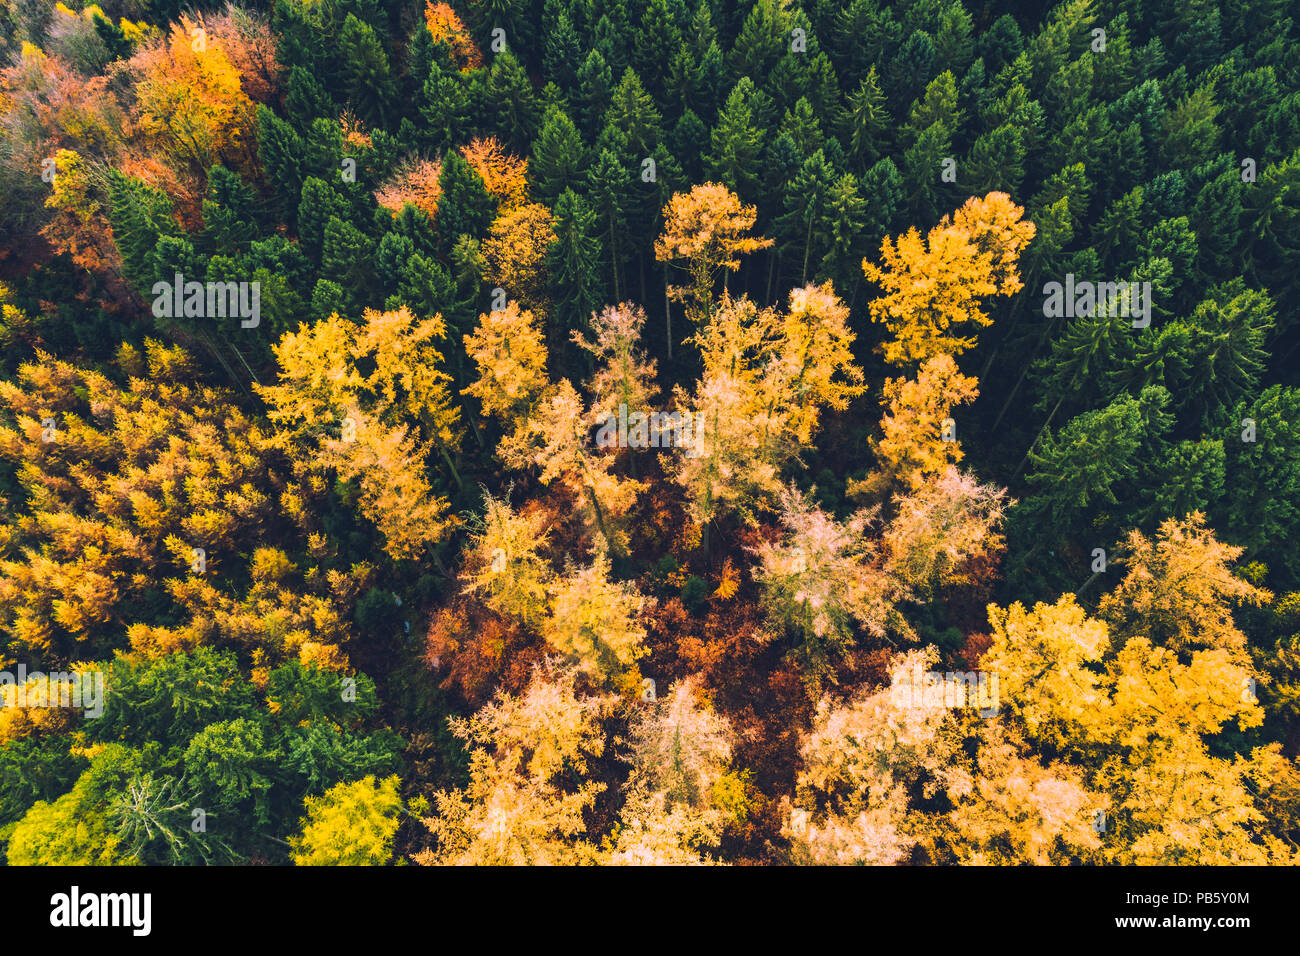 Autumn forest with colorful trees and leafs from above in aerial view taken during drone flight as background and template - Stock Image